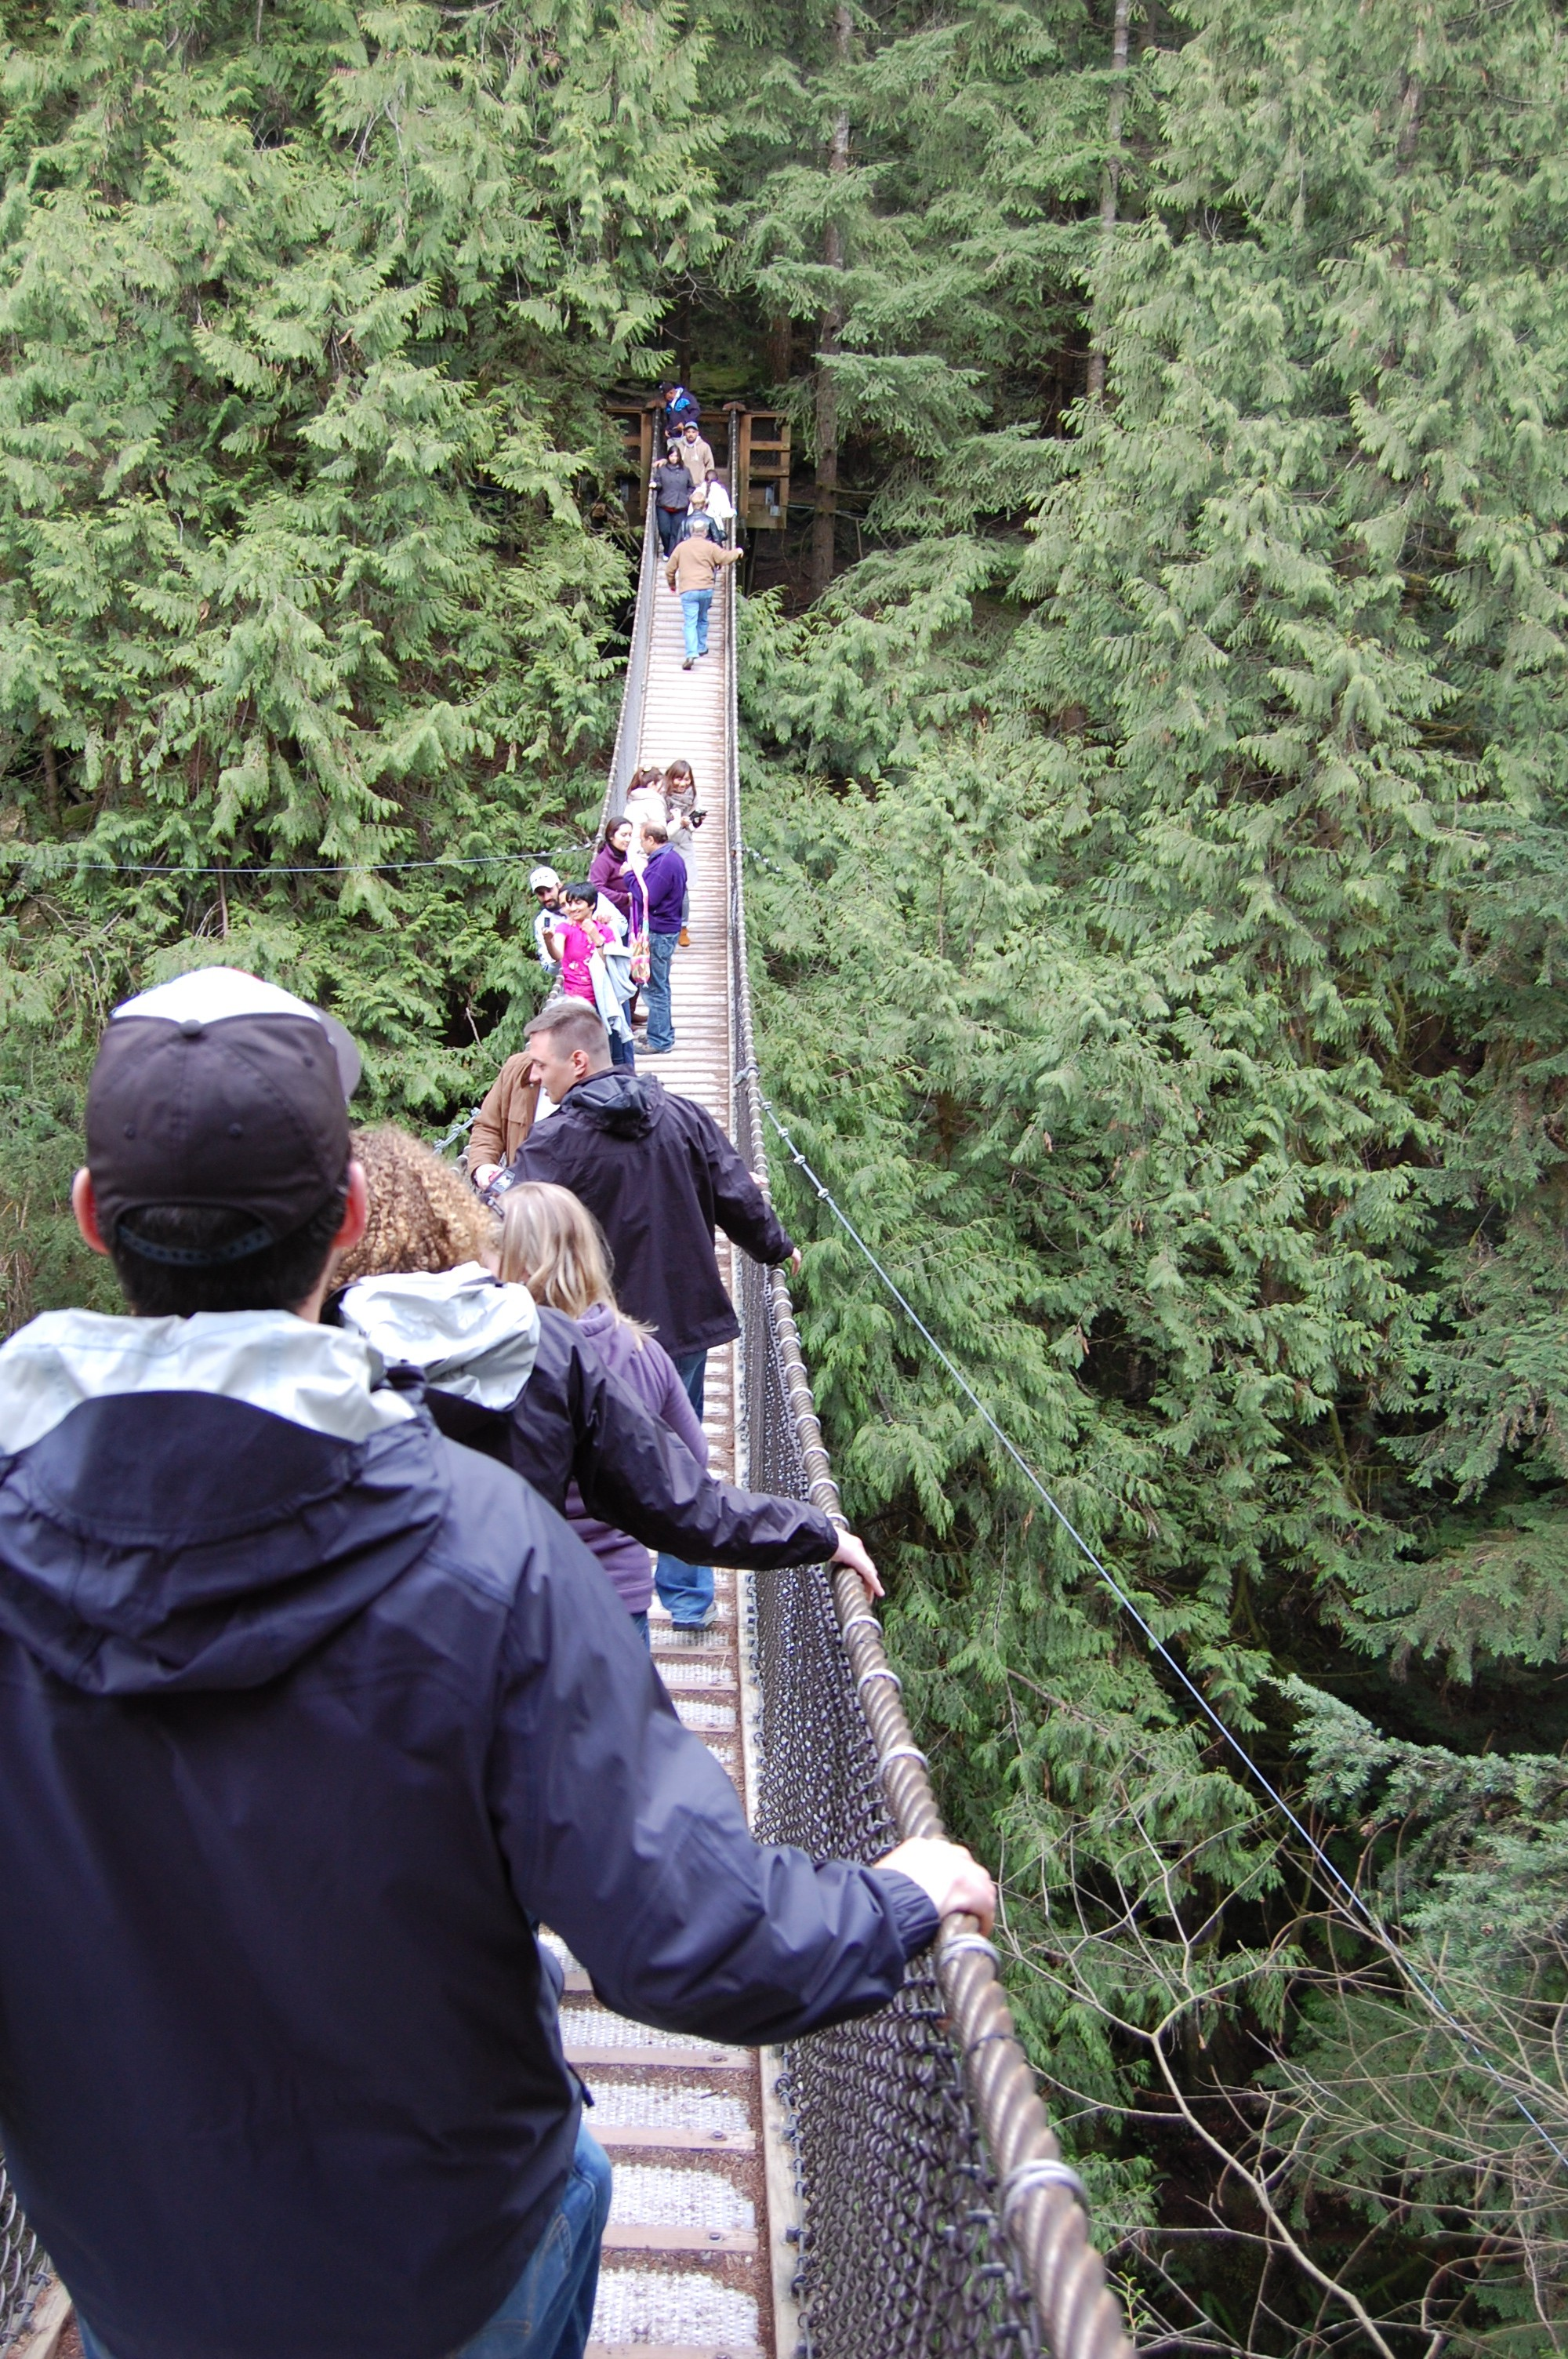 But I have to say the coolest part about the park wasnu0027t the famous suspension bridge but was the awe-inspiring natural beauty of the park itself once you ... & Lynn Valley Park: Vancouveru0027s other suspension bridge | ashly u0026 monkey